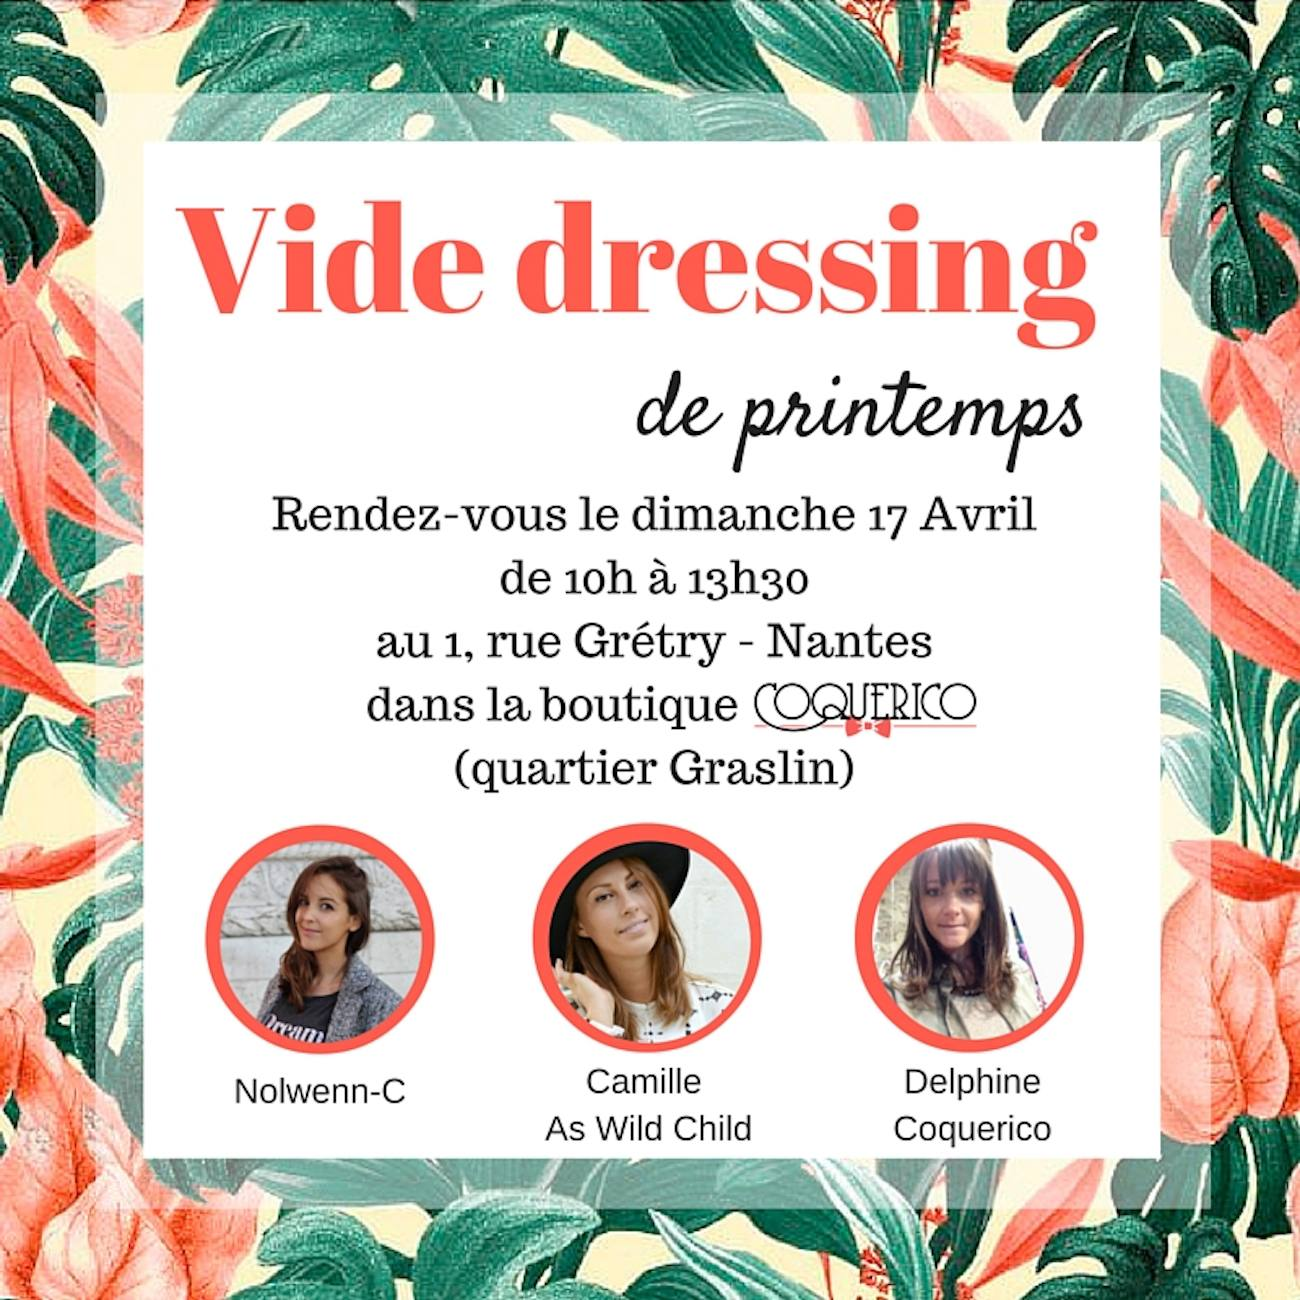 10 things 3 - VIDE DRESSING COQUERICO